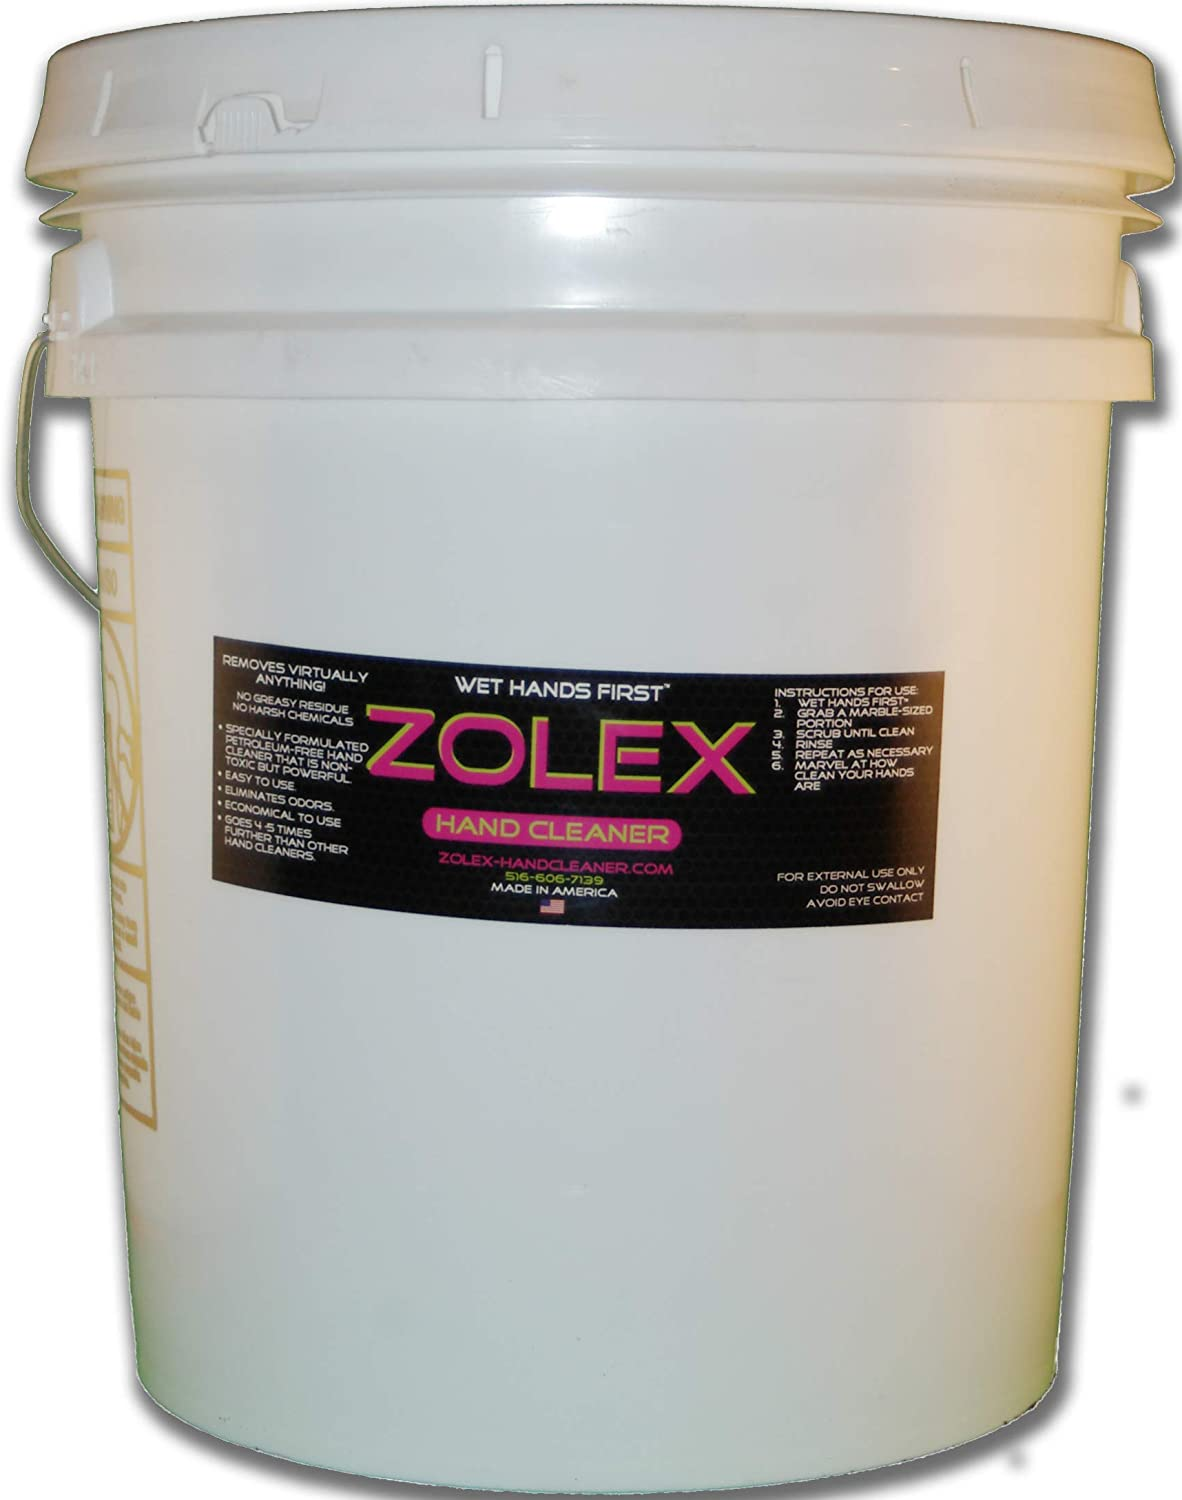 Zolex Water Activated Hand Cleaner for Working Hands| Stain Remover for Heavy Duty Workers | Grease Remover for Auto Mechanics - Non-Toxic Petroleum Free | Commercial-Sized Pail (25 lb)